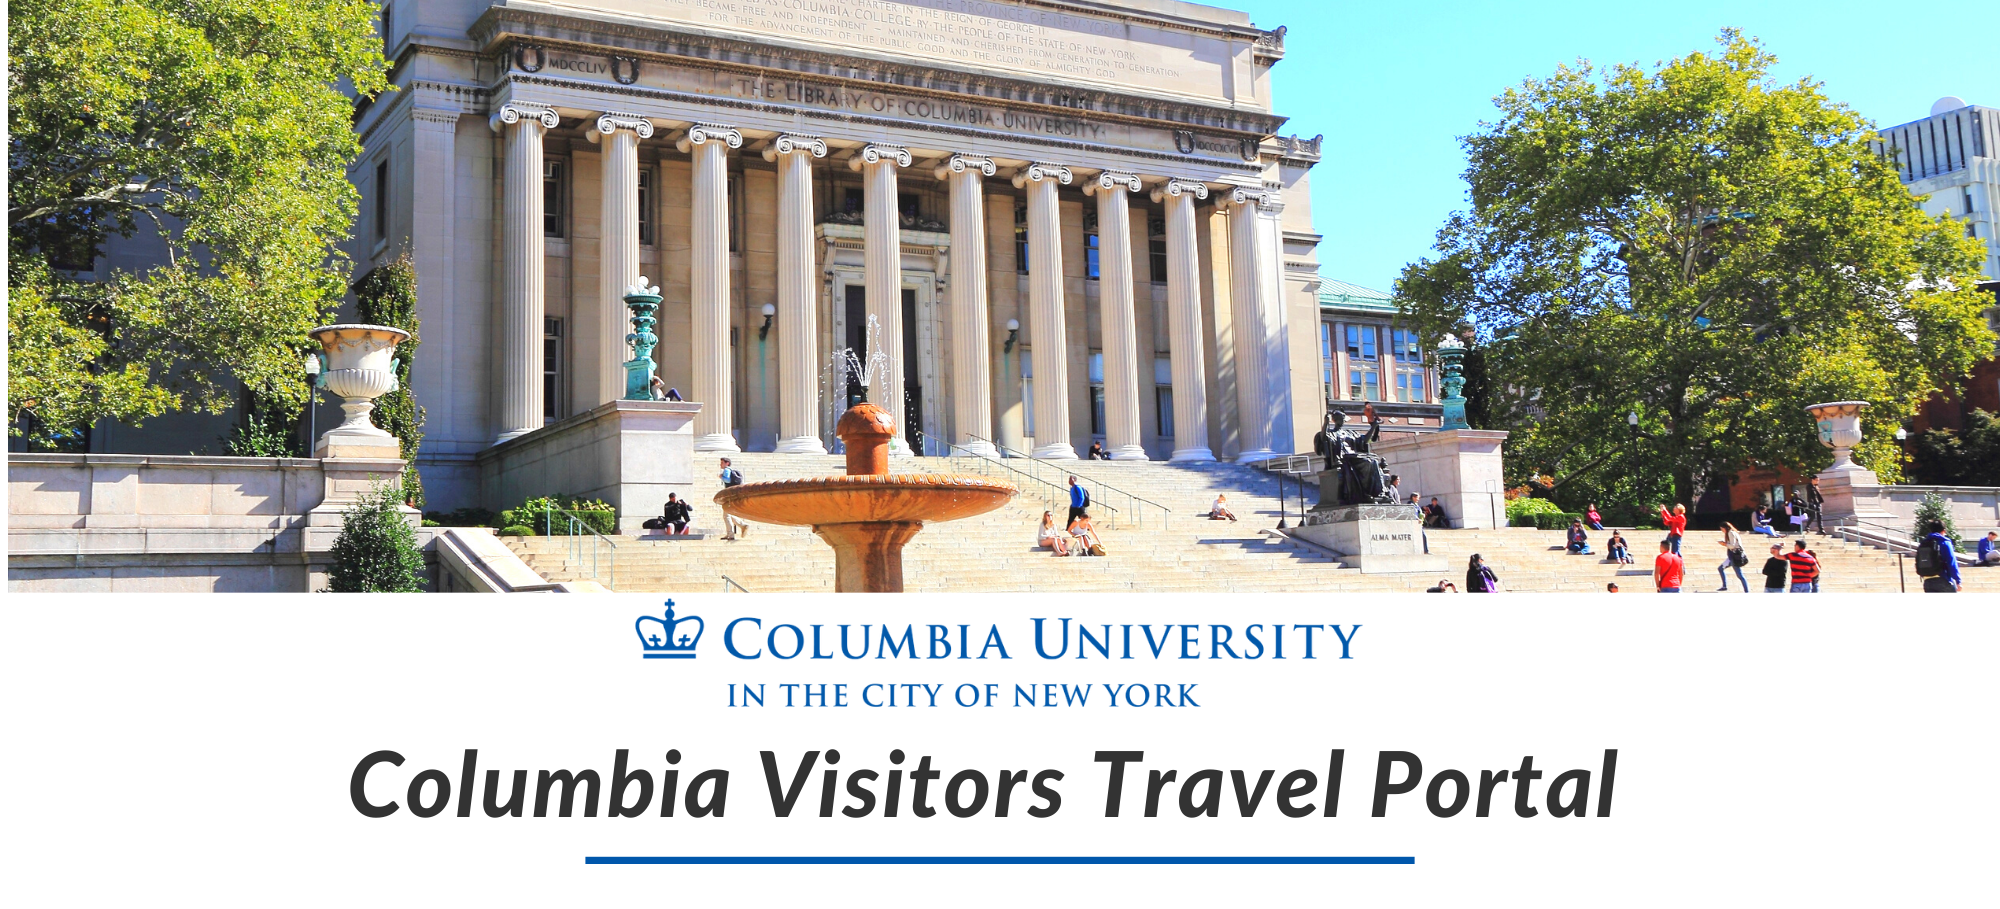 Copy of Columbia Visitors Travel Portal (2)